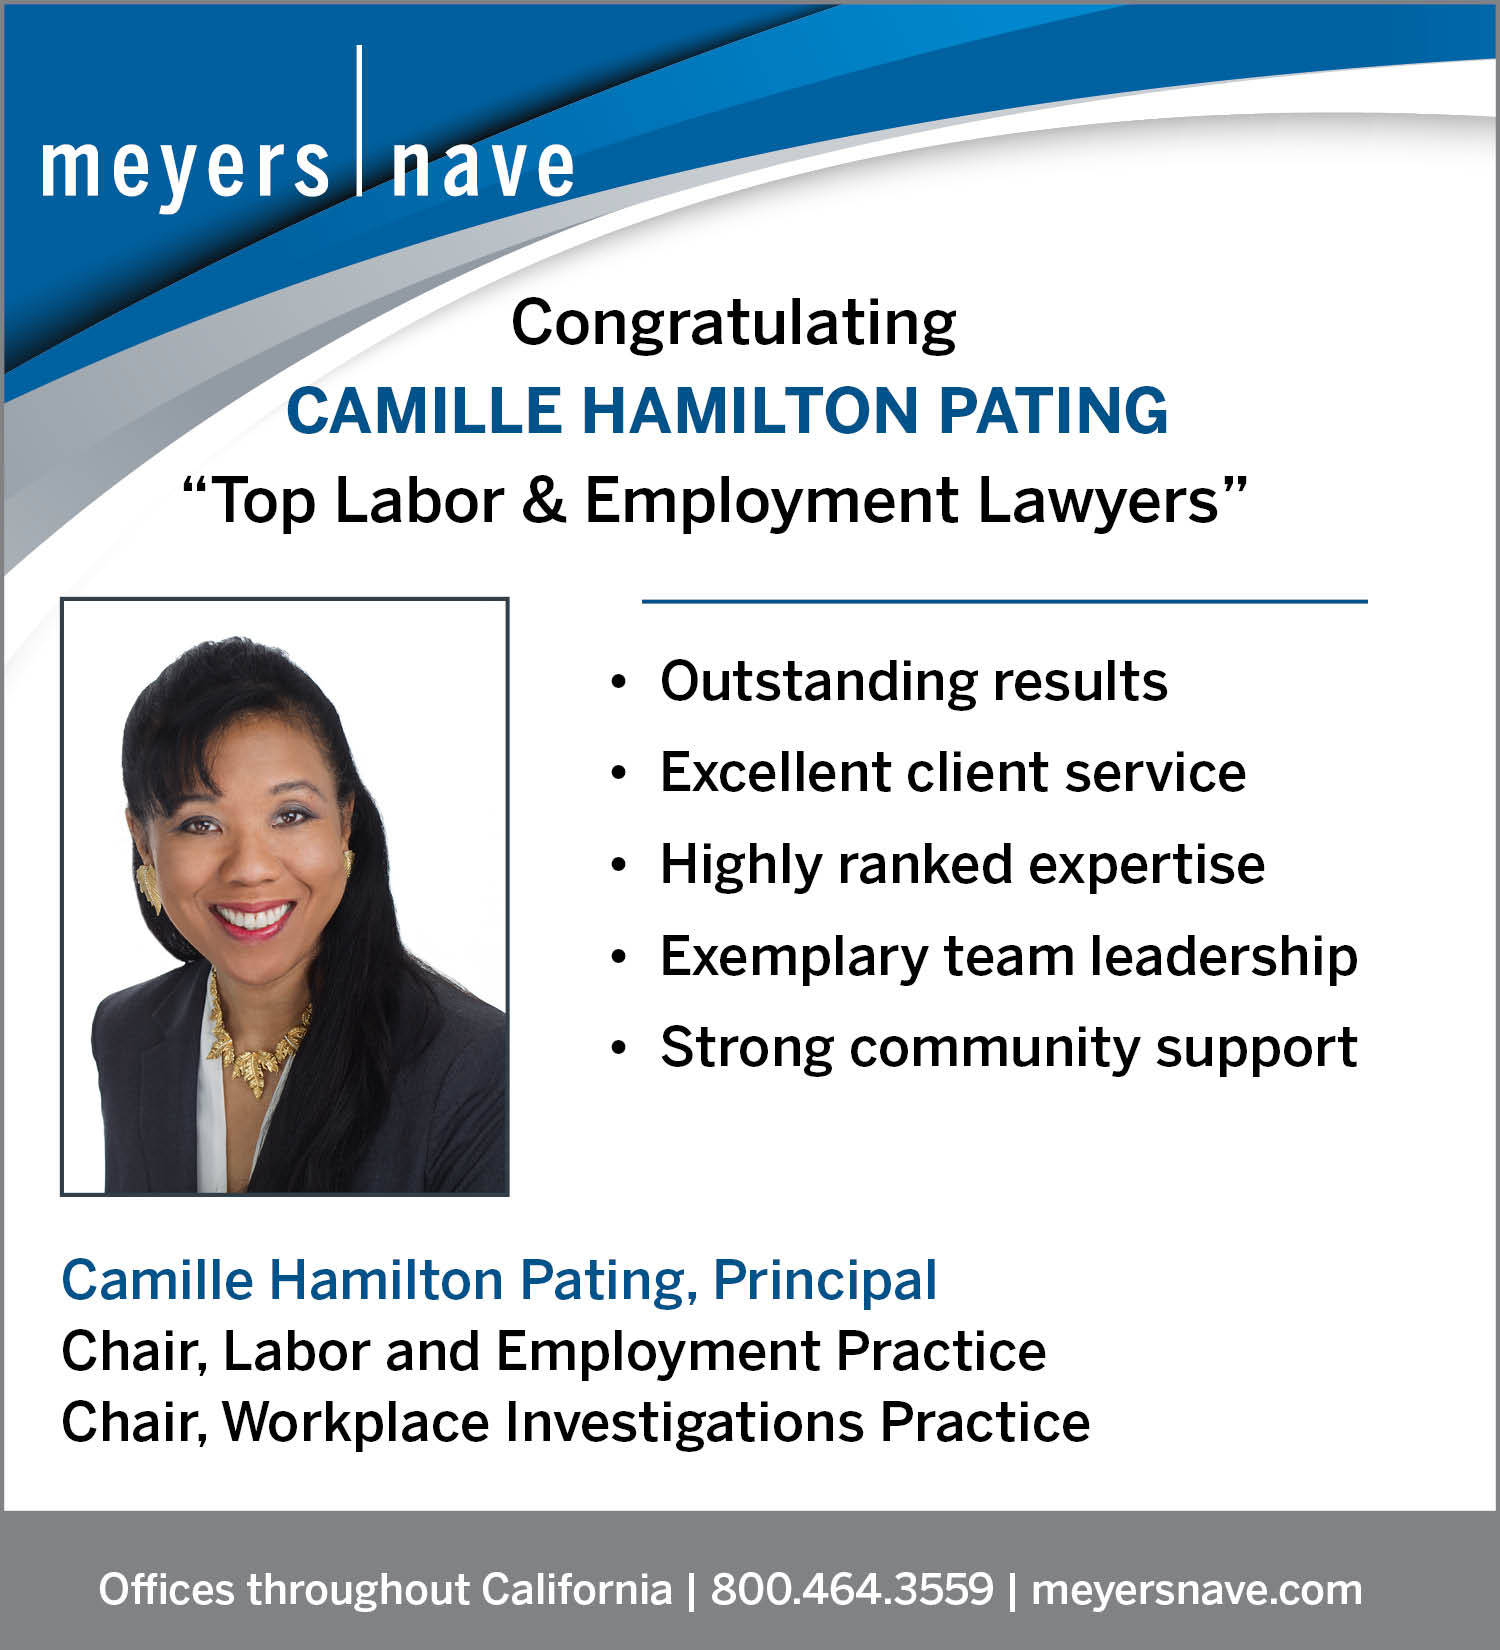 congratulatory ad for Camille Hamilton Pating in Daily Journal